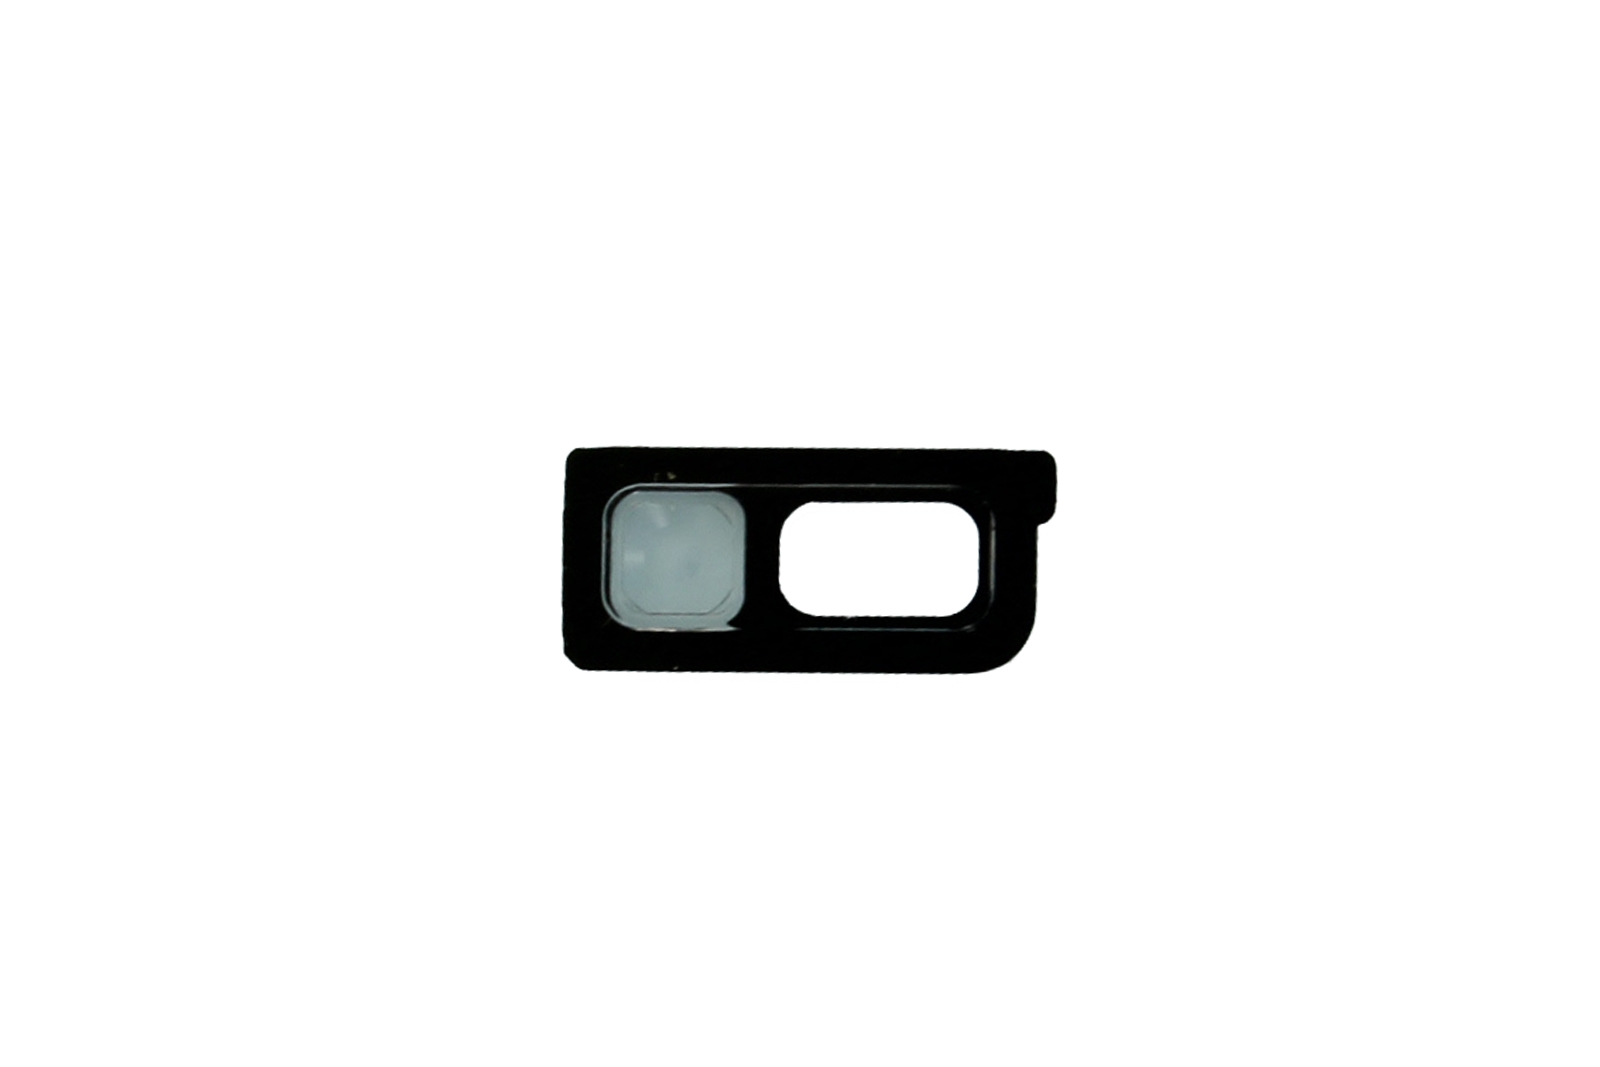 Details about Genuine Samsung Galaxy Note 8 N950 Heart Rate Monitor Lens /  Display - GH64-0650